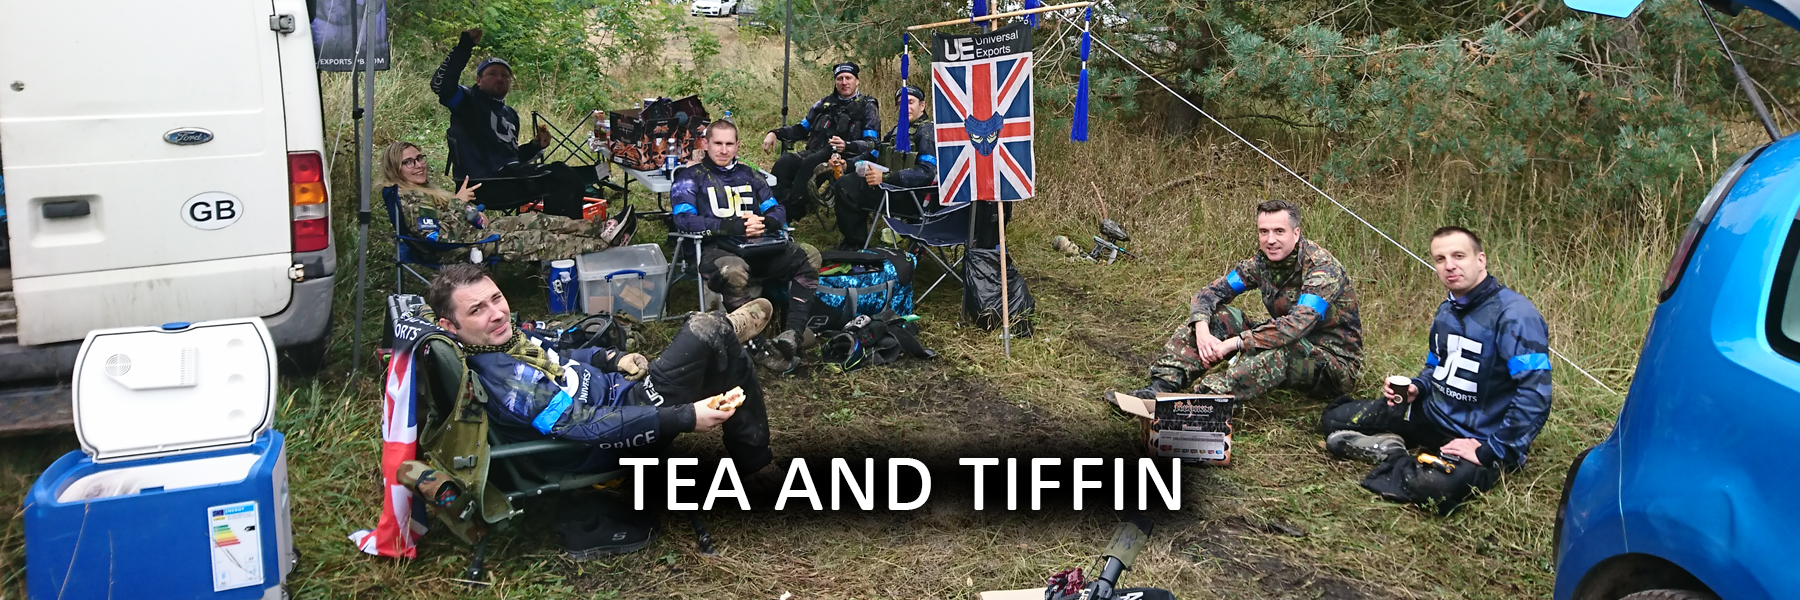 Tea and tiffin